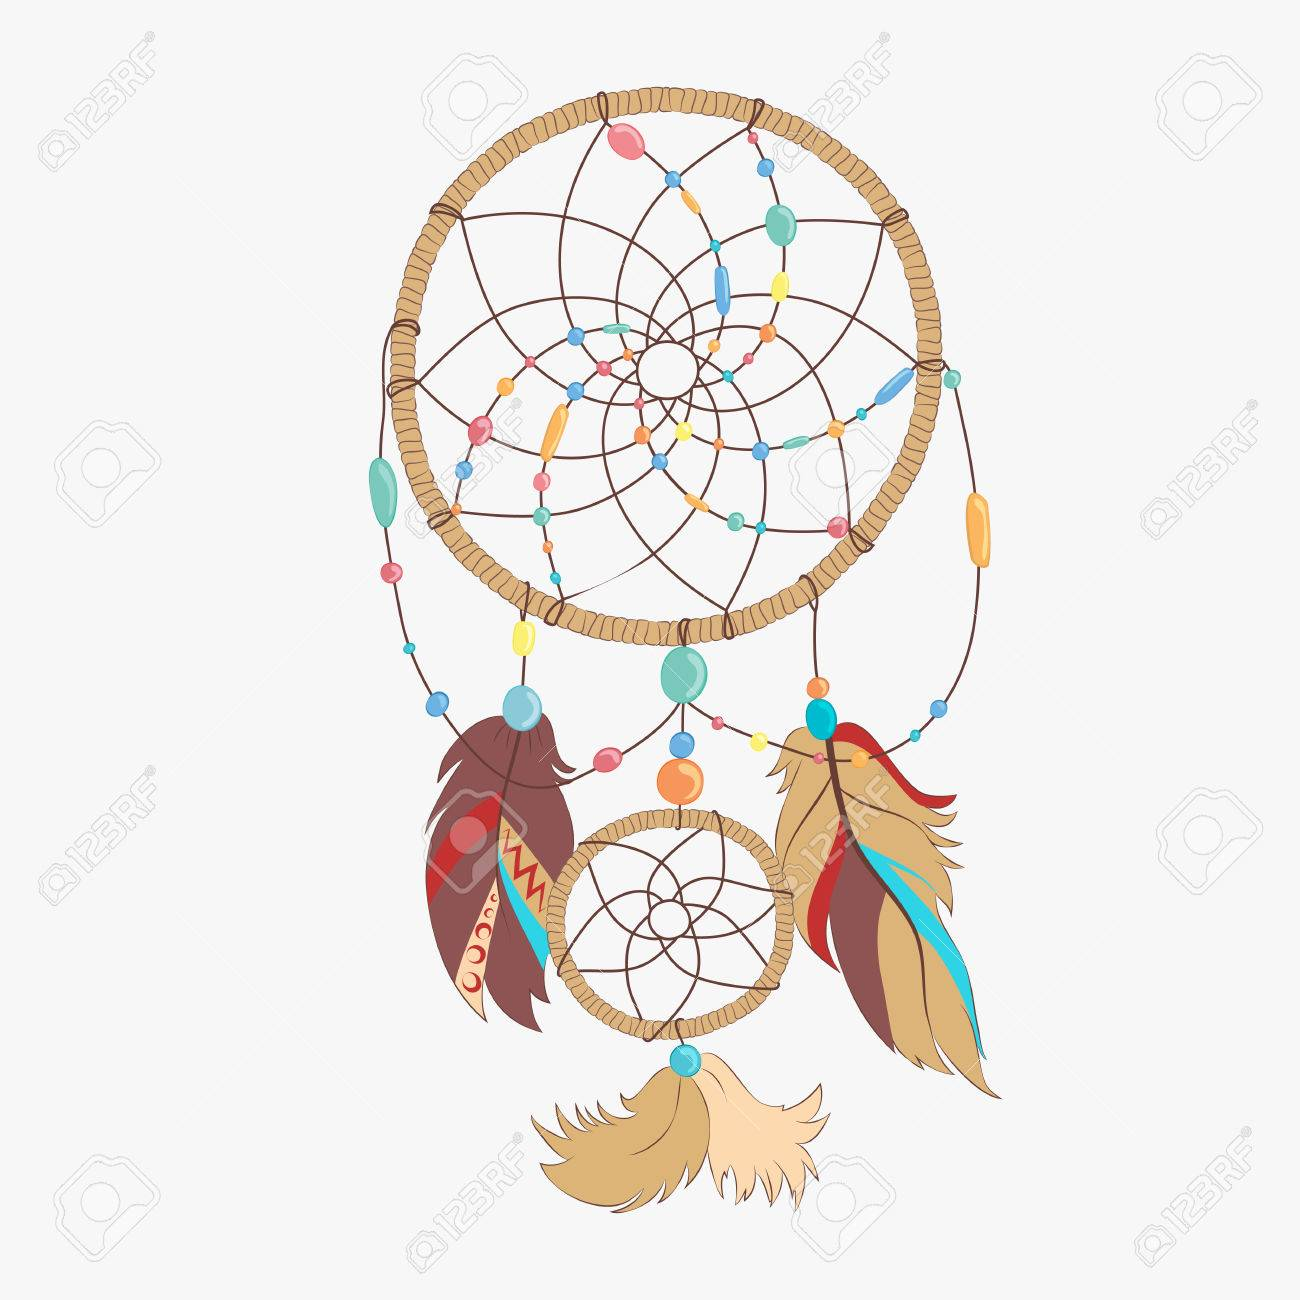 Vector dreamcatcher. Dream catcher with indian vector feather. Magical dreamcatcher with sacred feathers to catch dreams pictogram icon abstract vector illustration. - 58703729